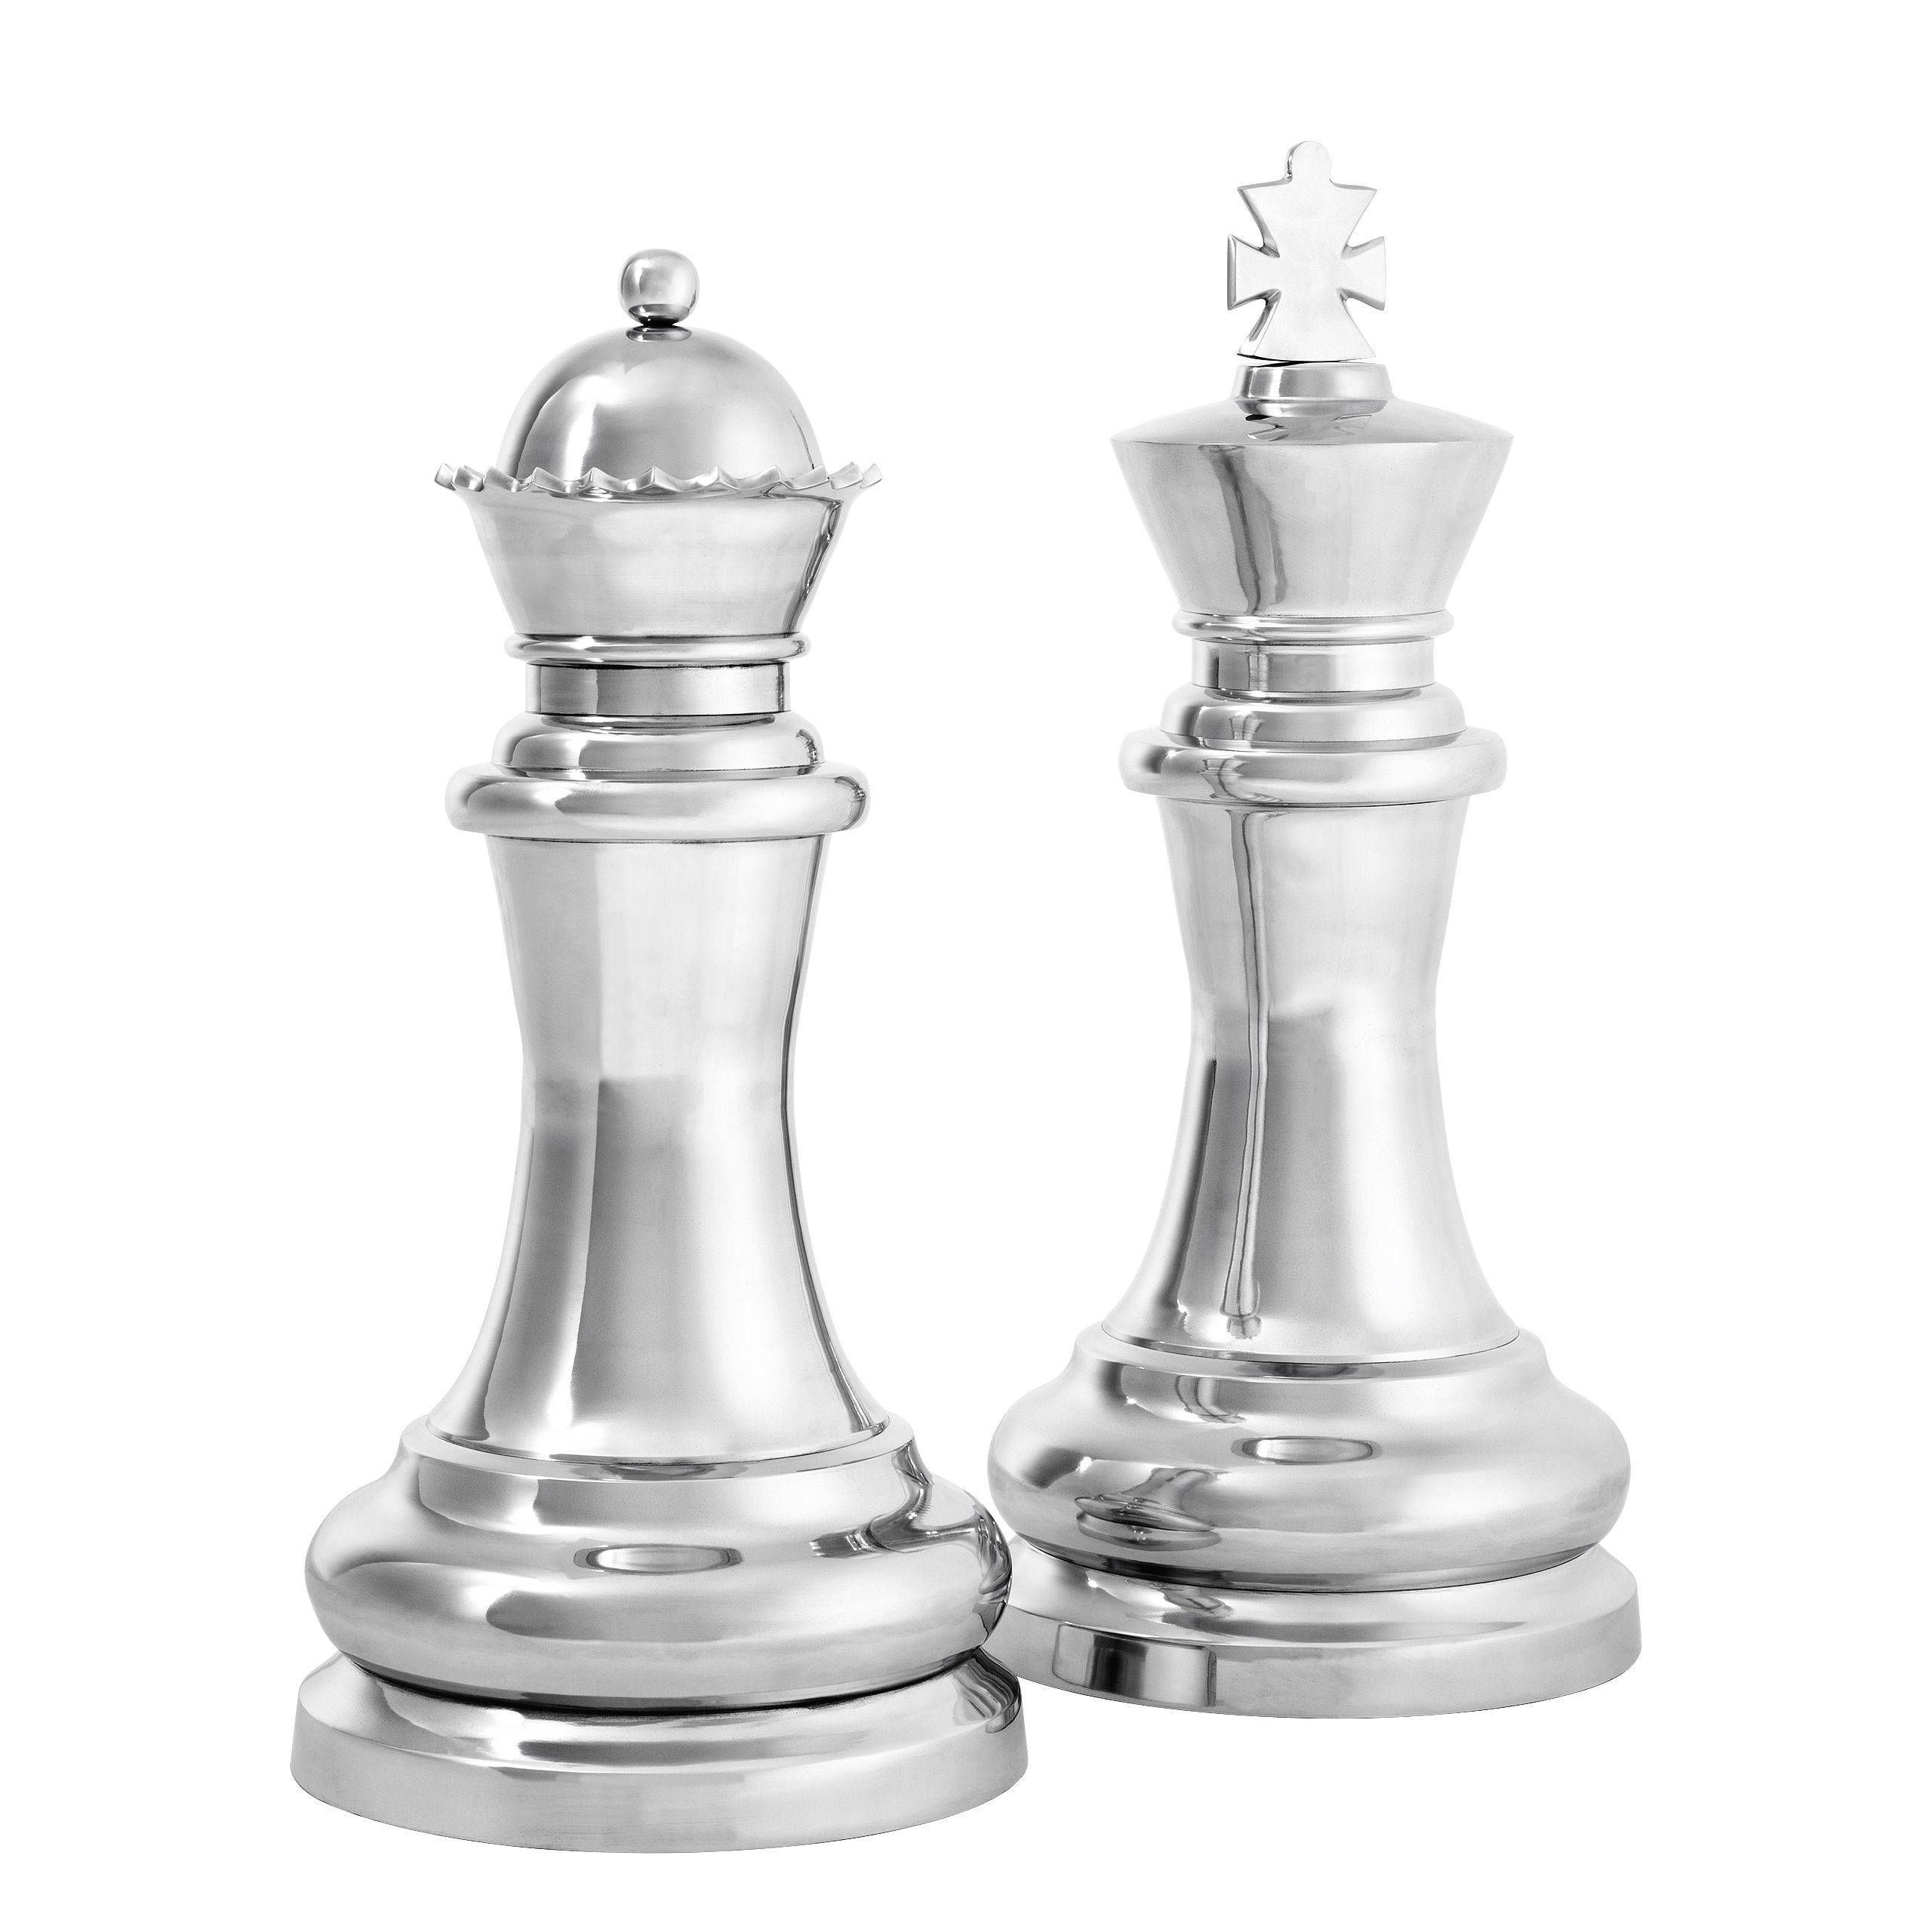 Chess King Queen In 2021 Chess King Chess Queen Chess King And Queen